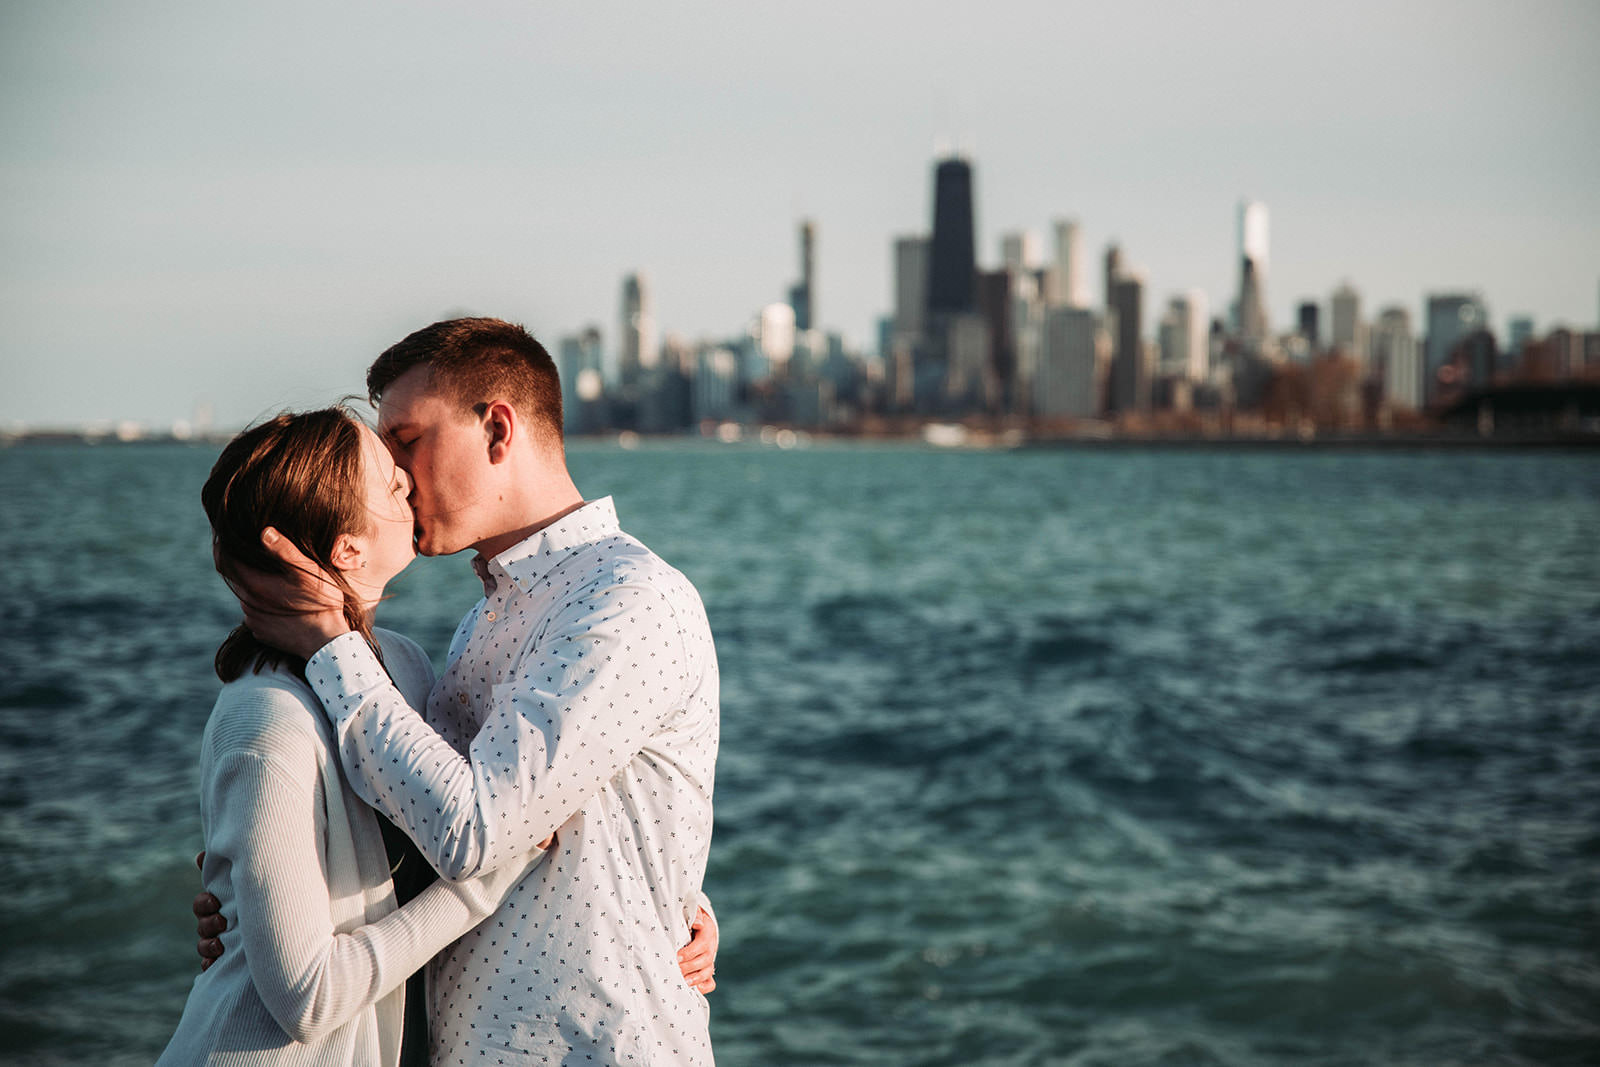 Downtown_chicago_spring_engagement_session-26.jpg